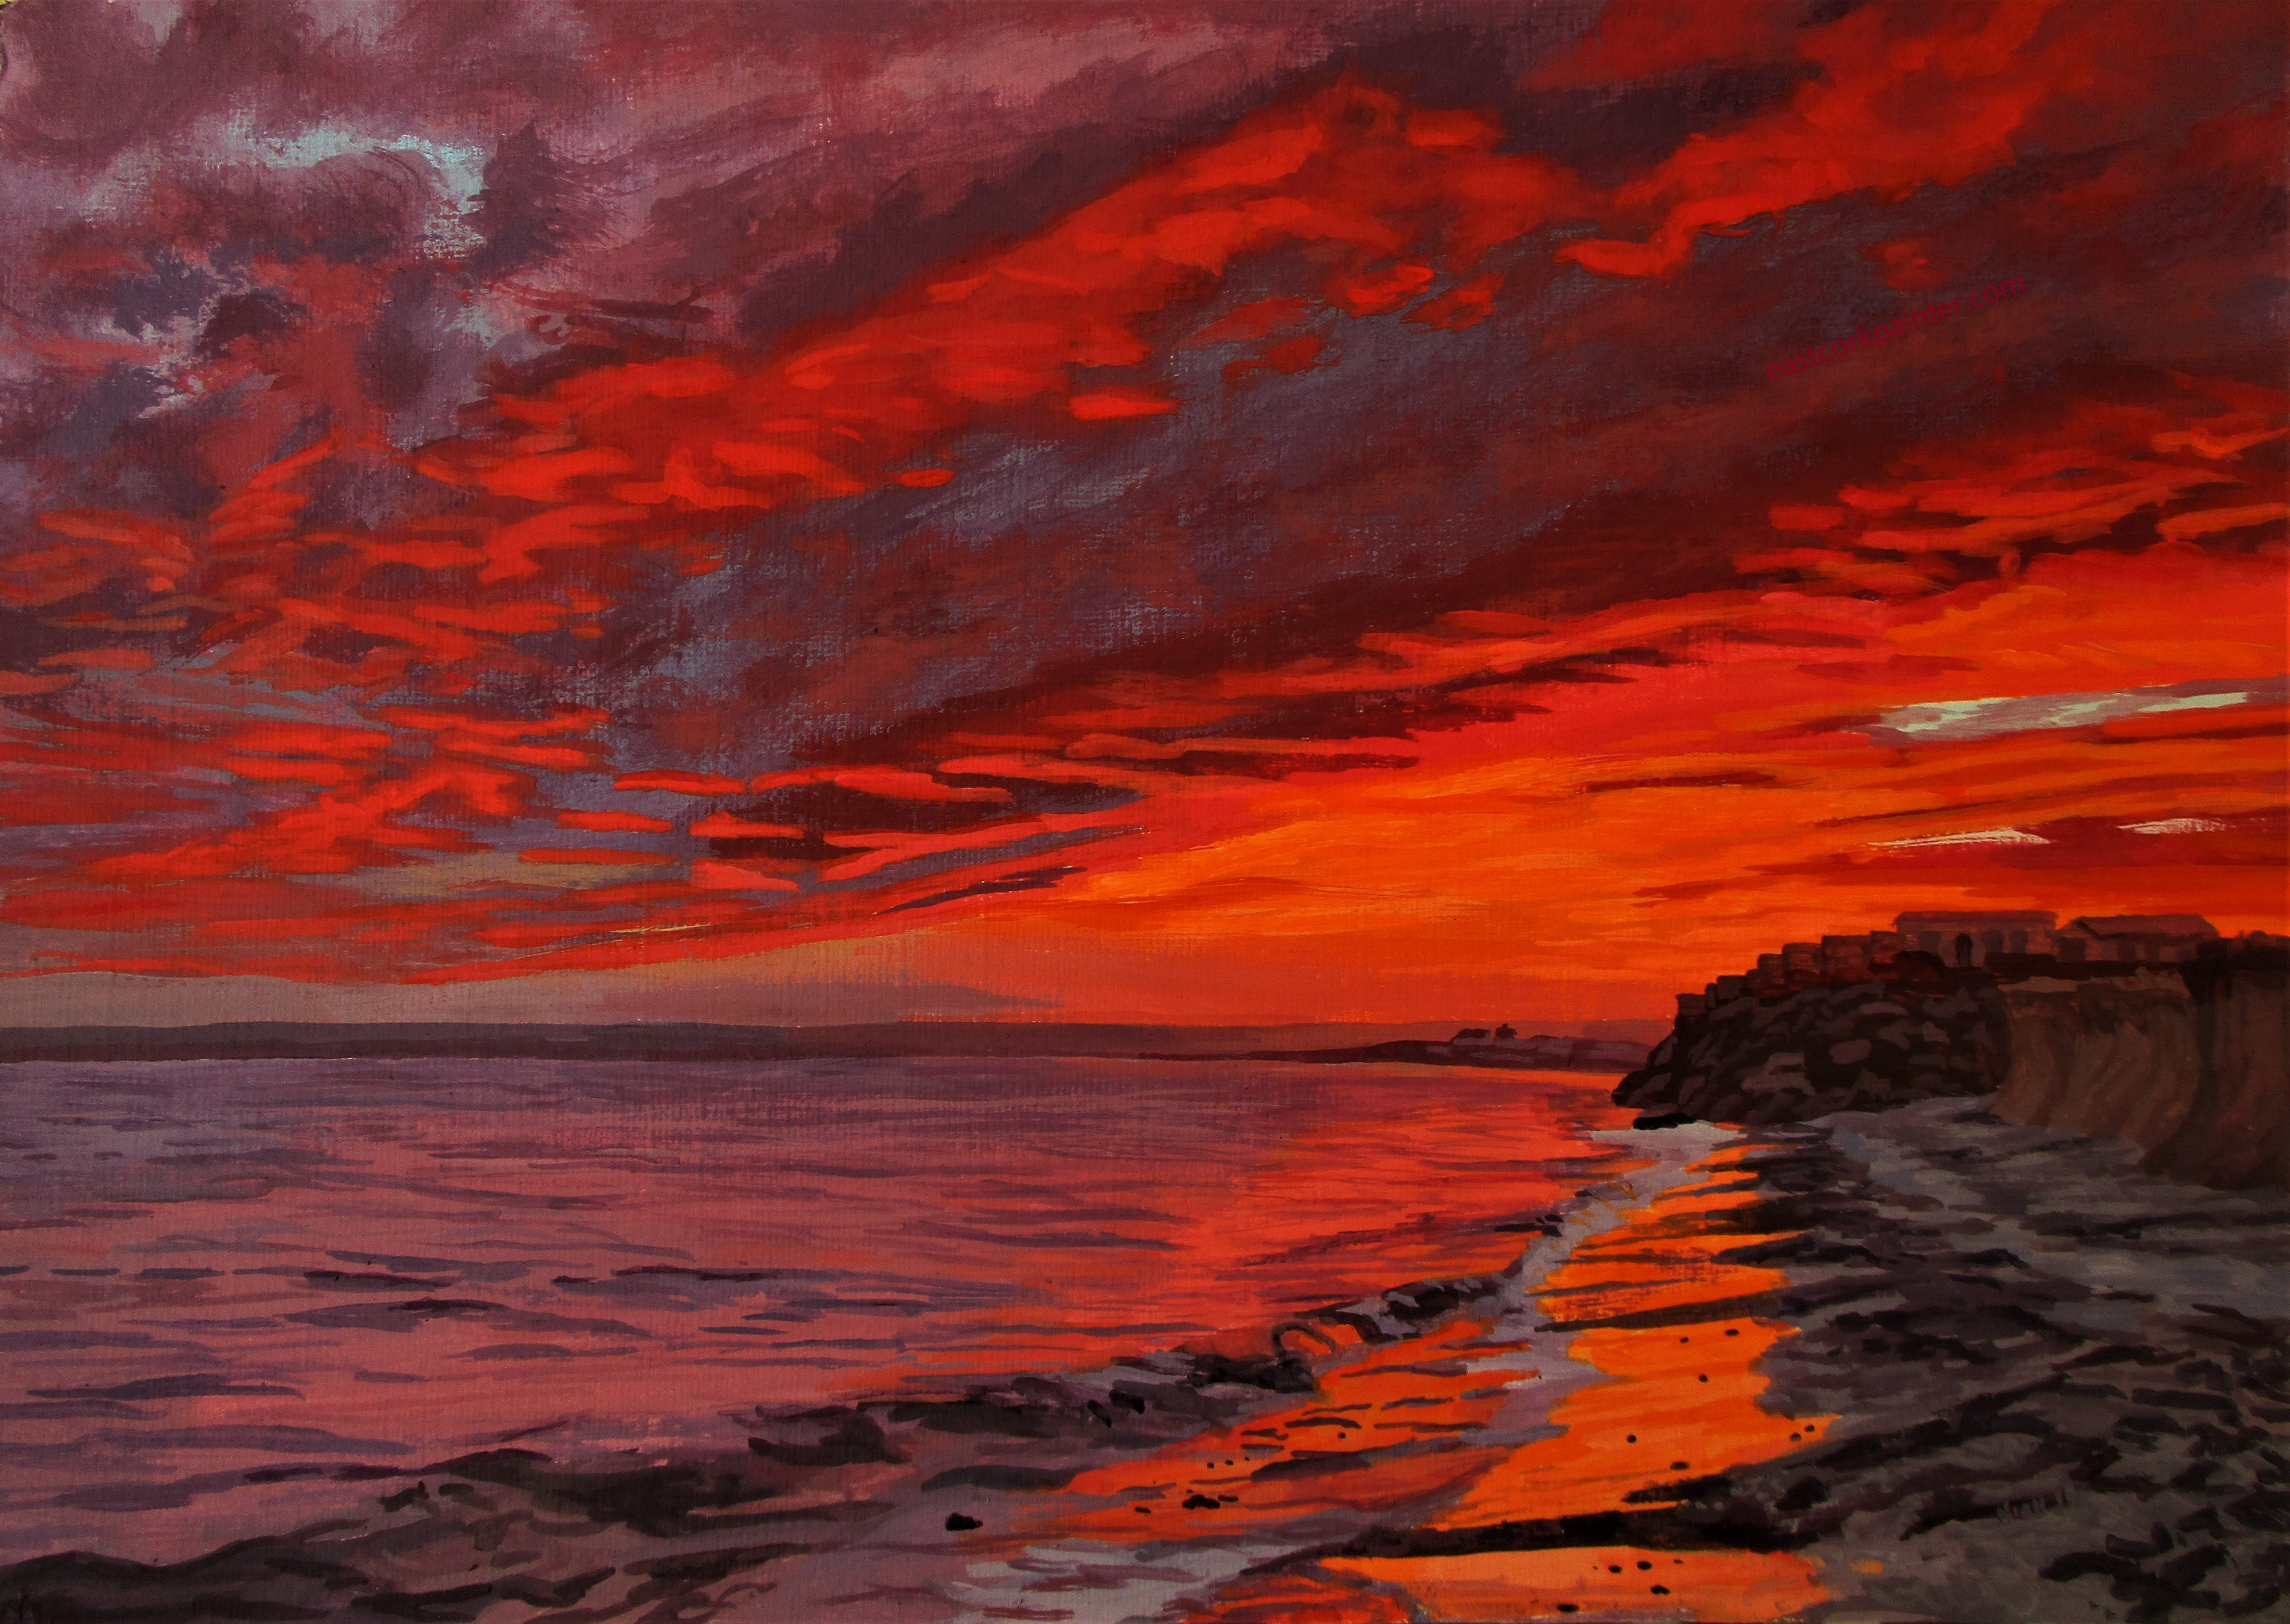 Fiery Red Sunset Over Garryvoe Beach Watermark